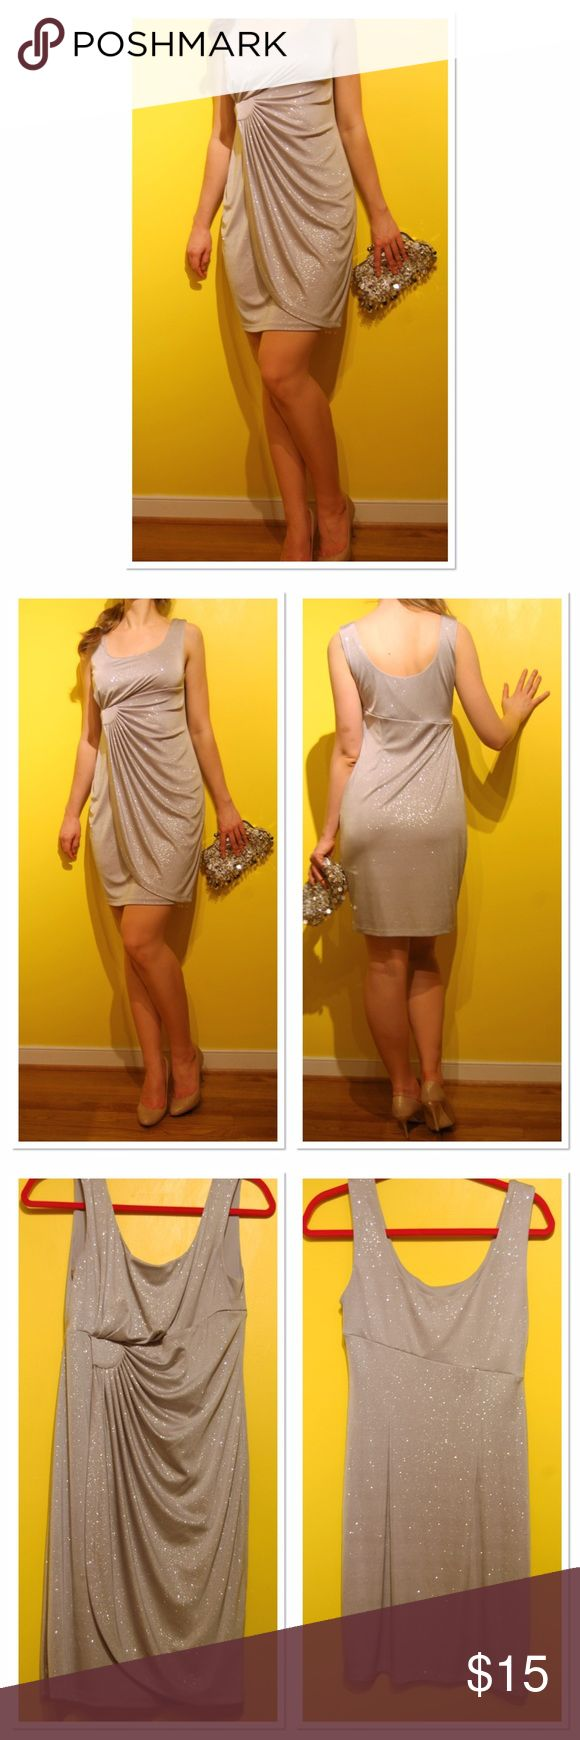 "Sparkling ✨ formal evening wedding guest dress Perfect for any special occasion, this beautiful dress was worn only one time. Fitted around the waist, compliments your body curves.  This sparkling silver dress definitely will make a splash! 🎉 Measurements (approximately): Chest (pit to pit) 15,5"" Waist: 28"" Length:36"" Dresses Wedding"